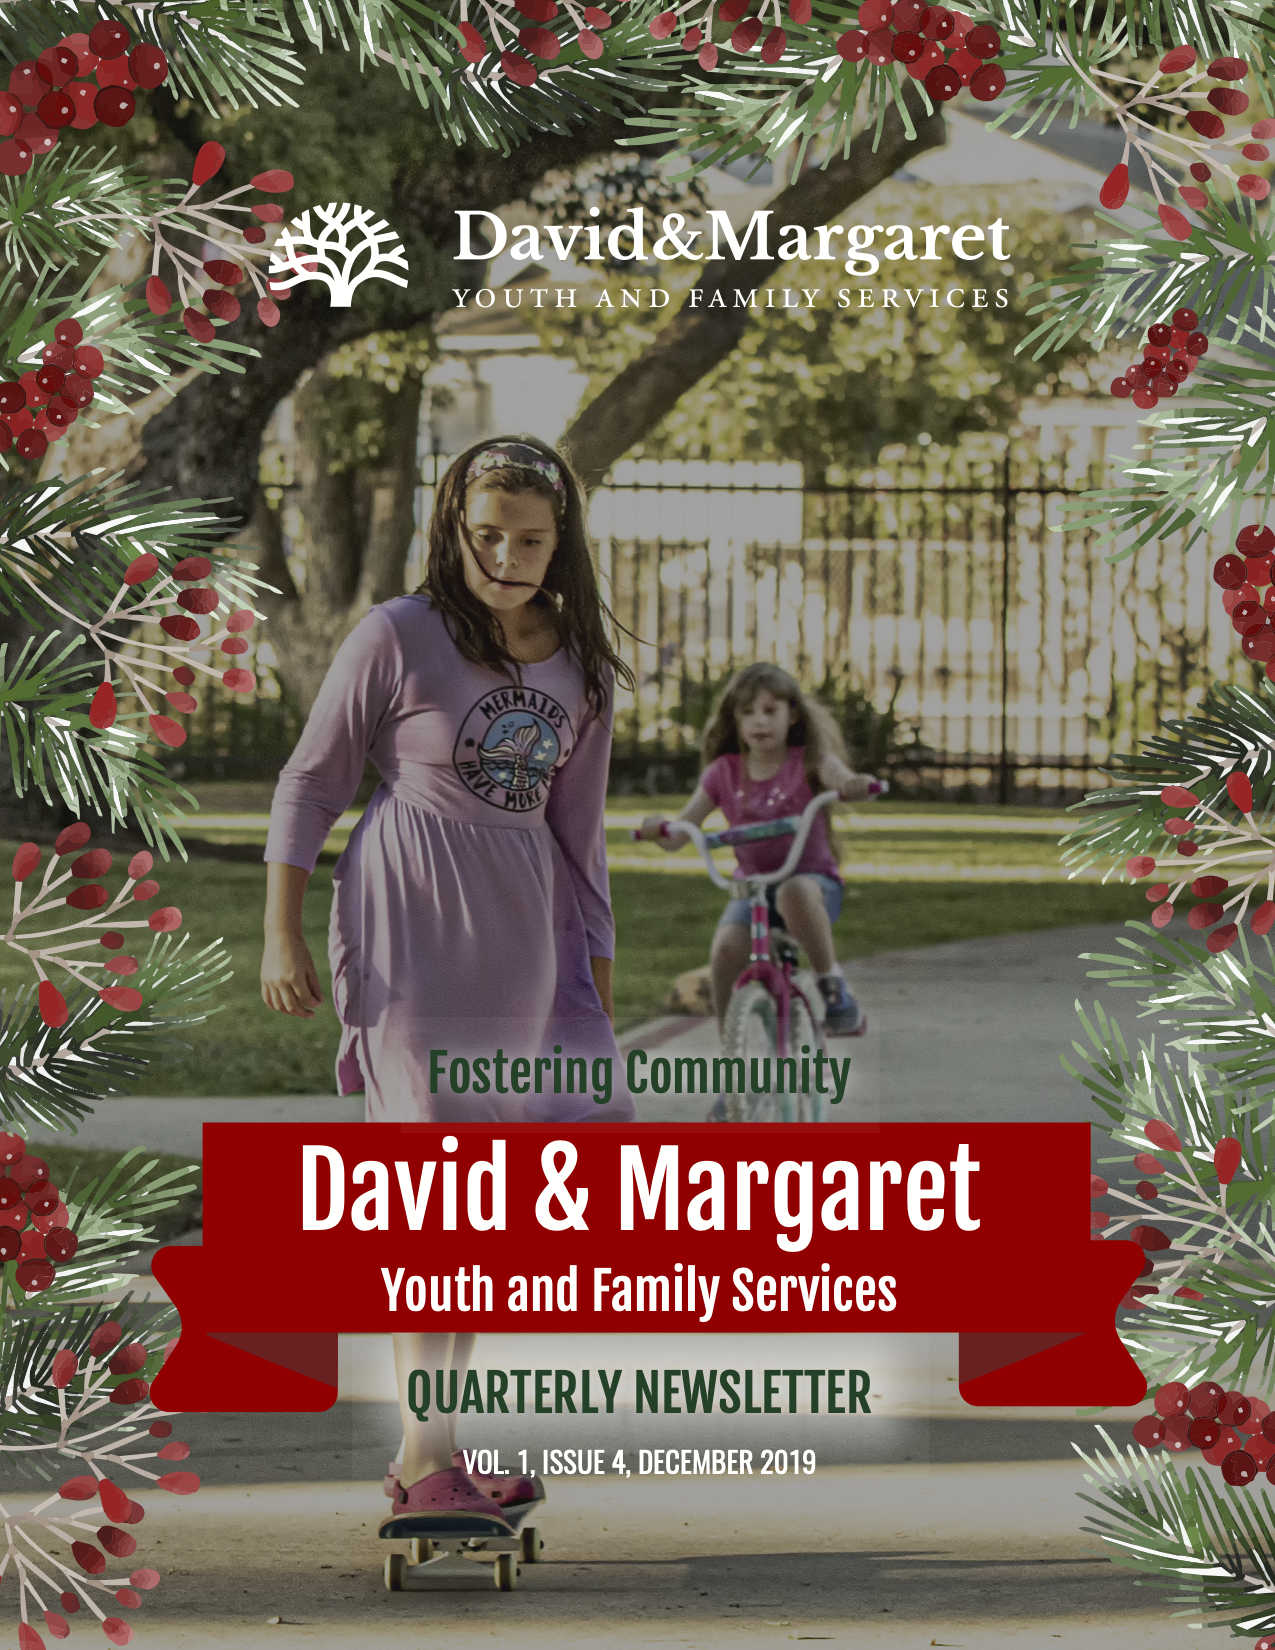 David & Margaret Quarterly Newsletter Vol. 1 Issue 4